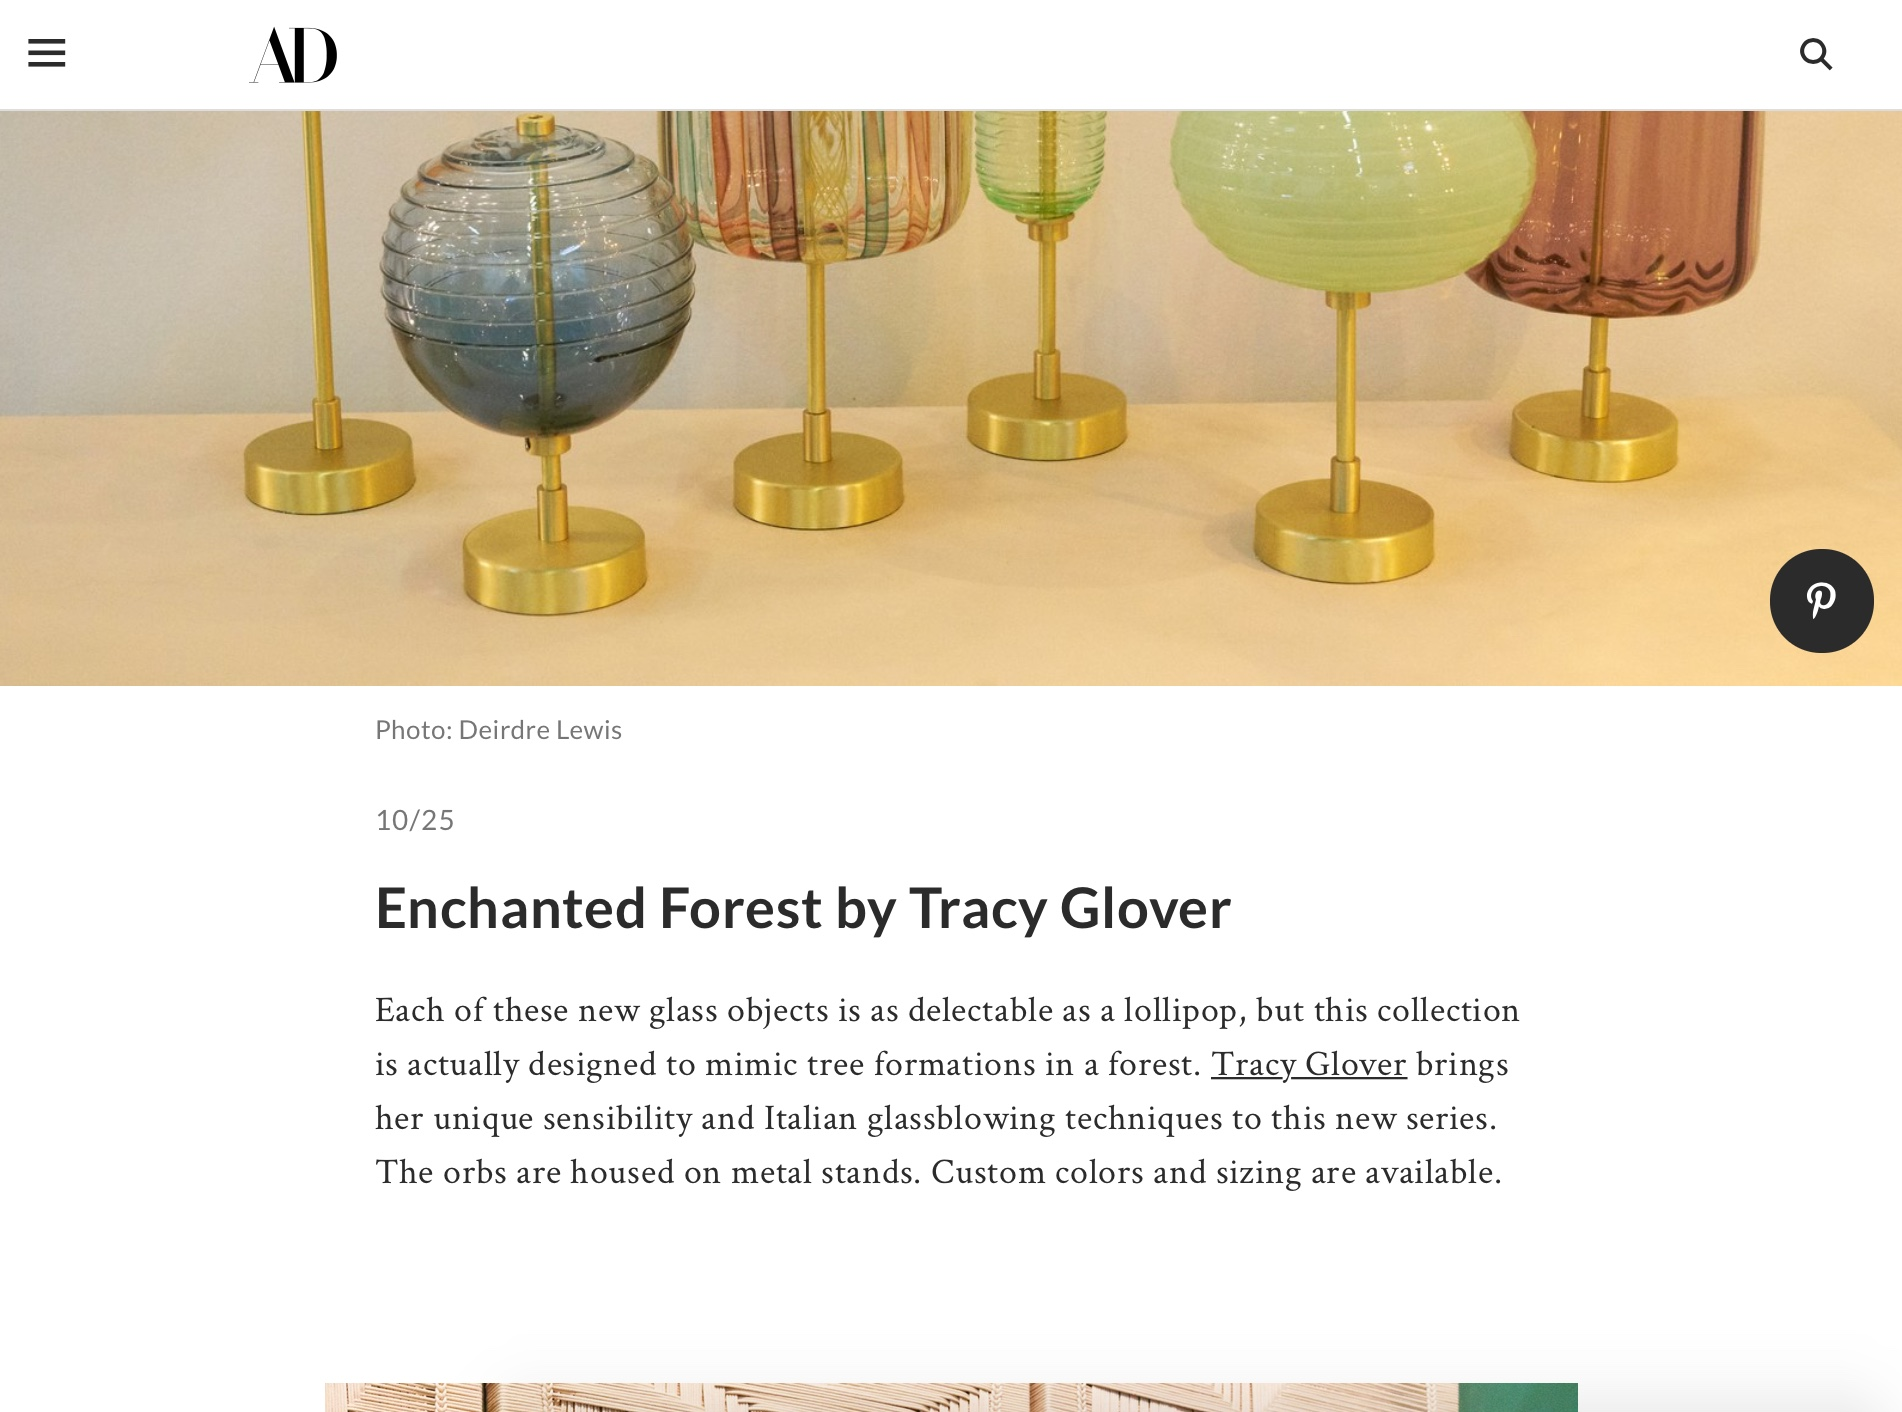 Architectural Digest AD Pro (March 29, 2019) - Tracy Glover Studio .jpeg